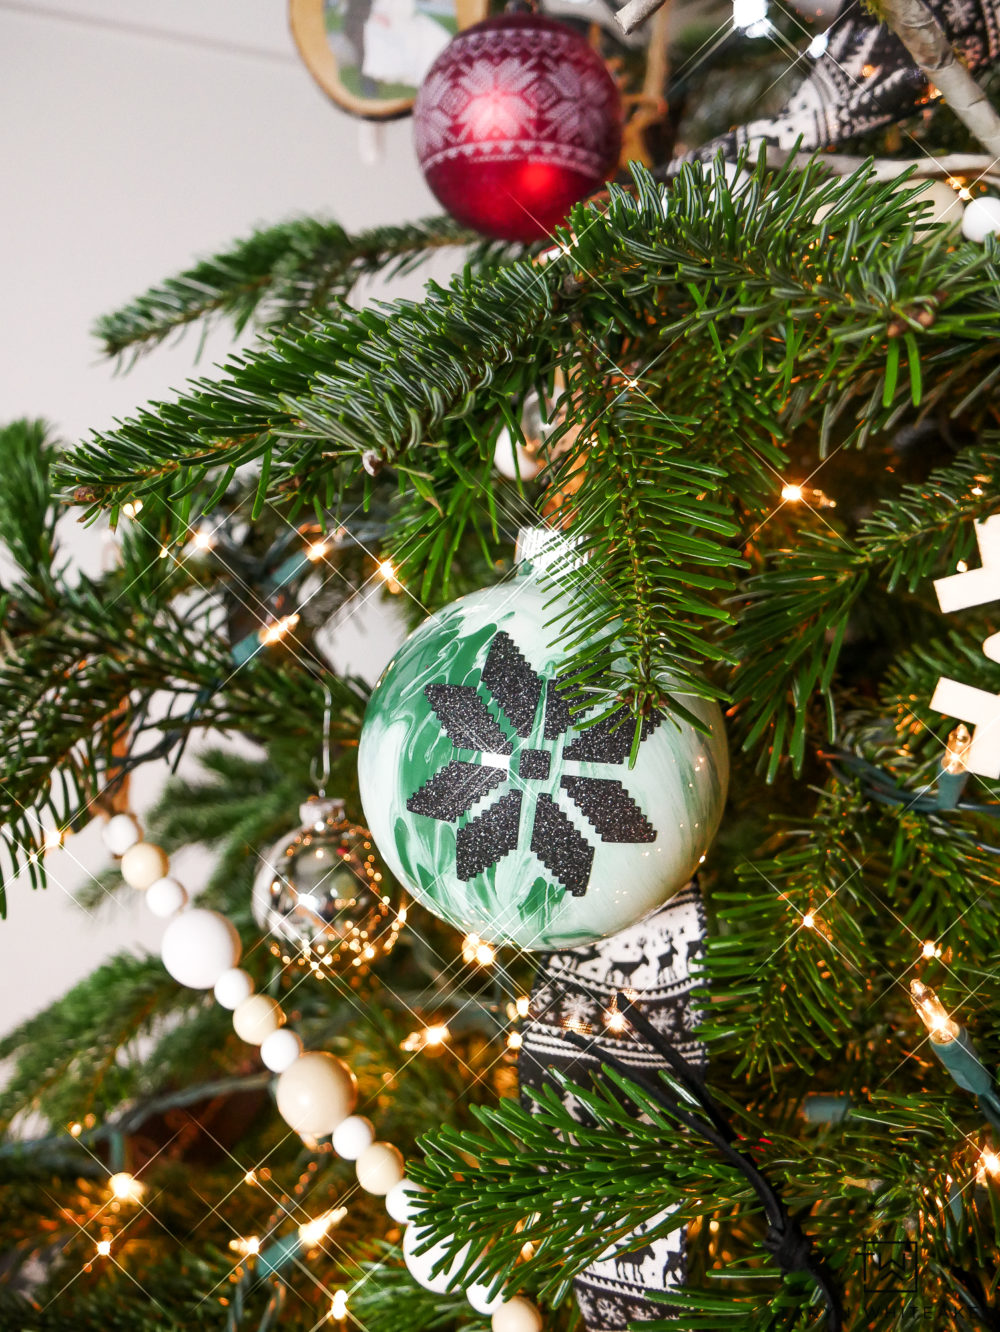 Green and White Marbled Glass Ornament with Nordic Snowflake Design,